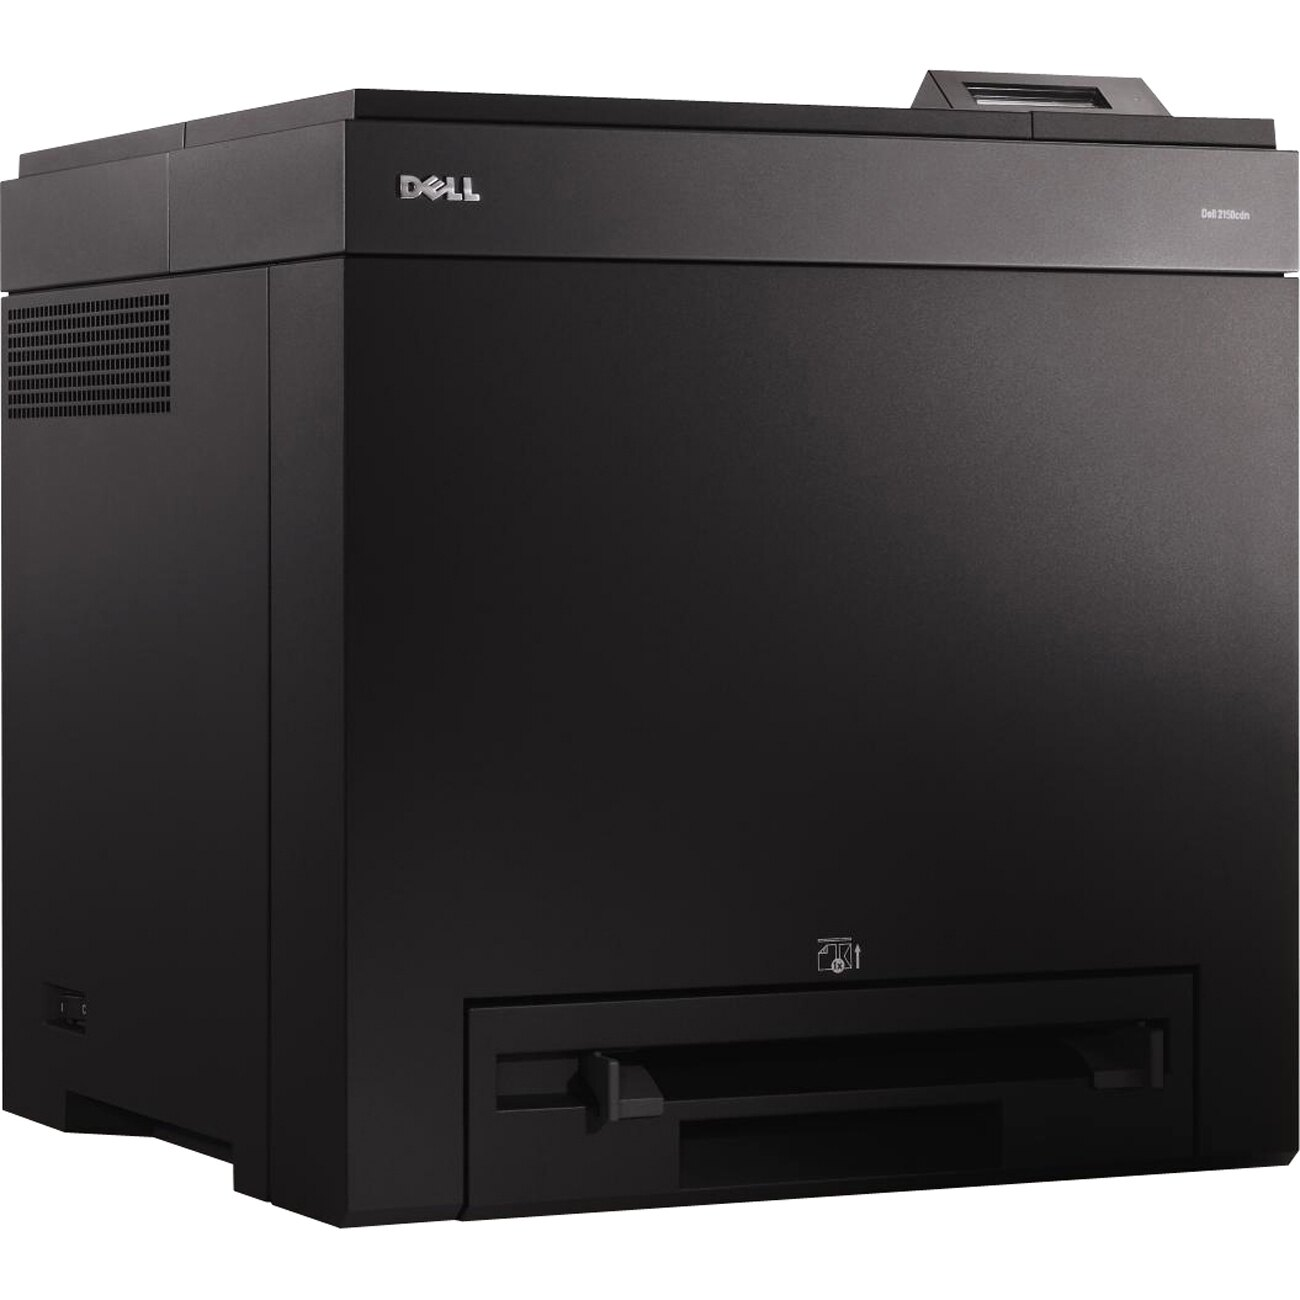 Dell 2150CDN Laser Printer - Color - Plain Paper Print - Desktop 0